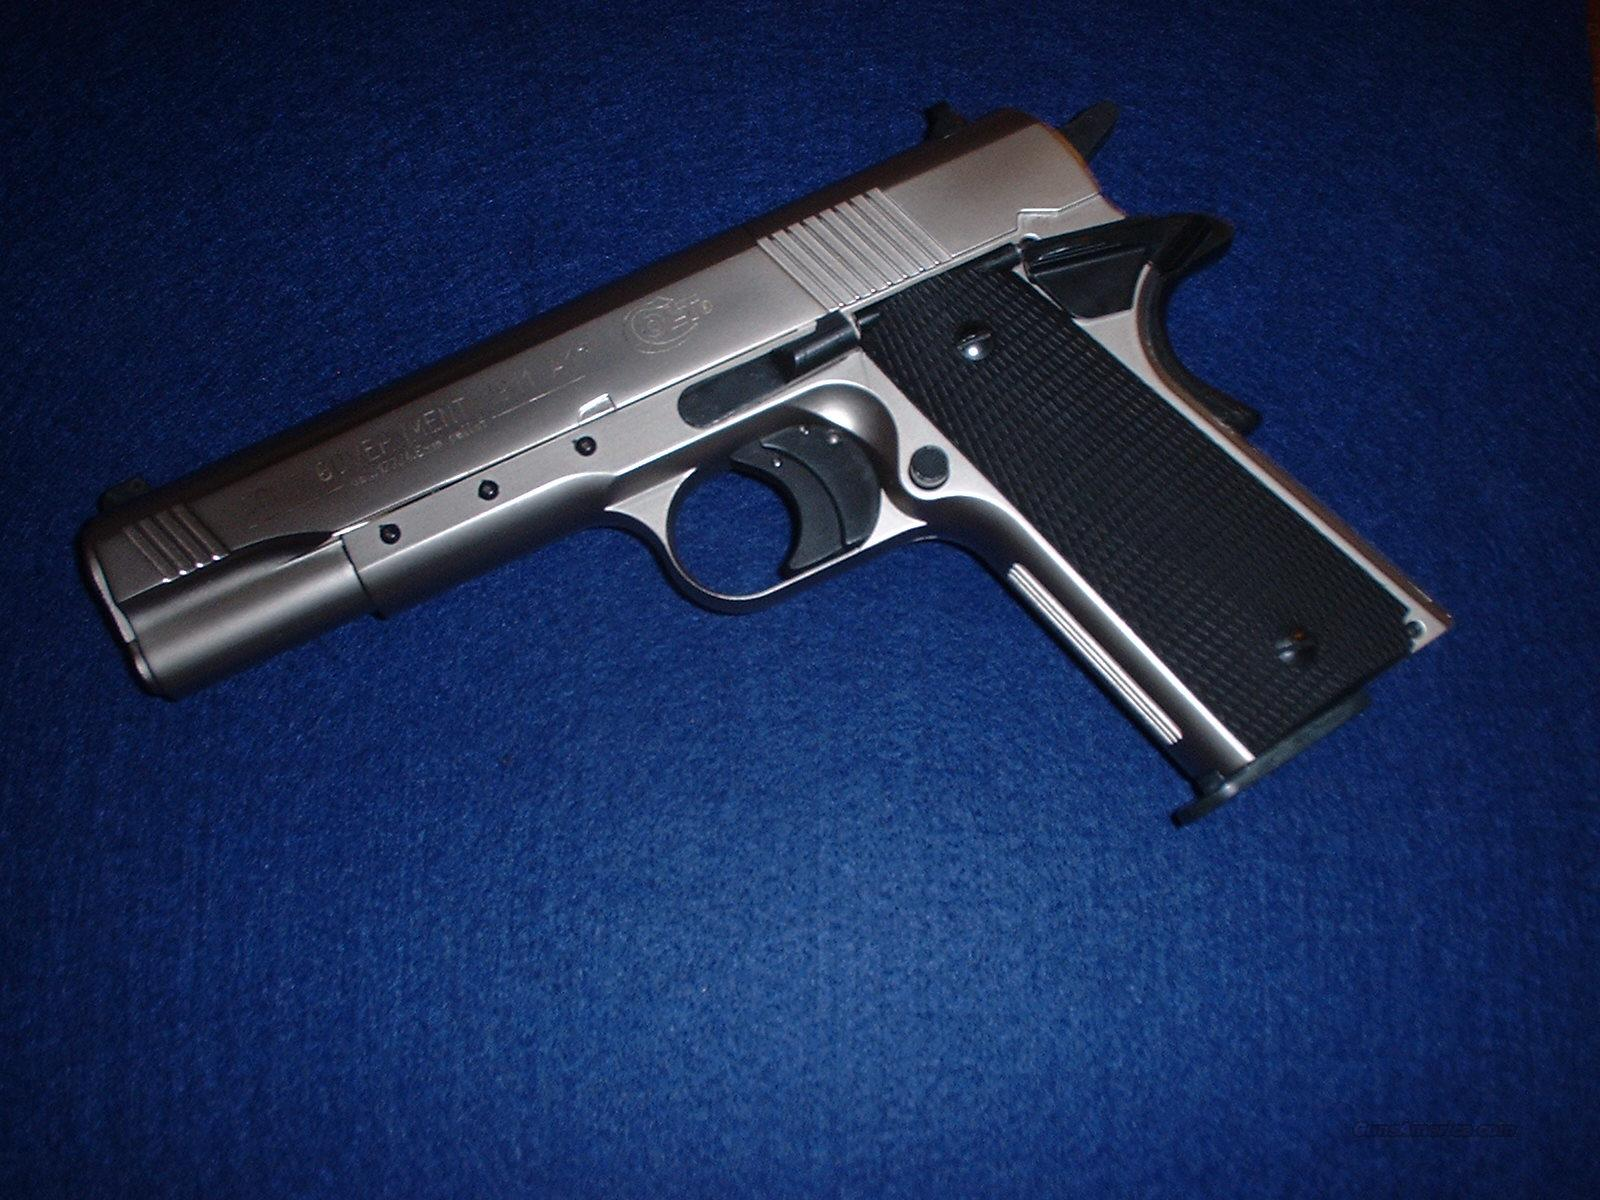 Colt 1911-A1 Nickel Finish  177 Pellet Co2 Pistol, Original Colt Marketed  Model, Not Umarex -PRICED REDUCED FOR X-MAS- SAME DAY EXPRESS SHIPPING